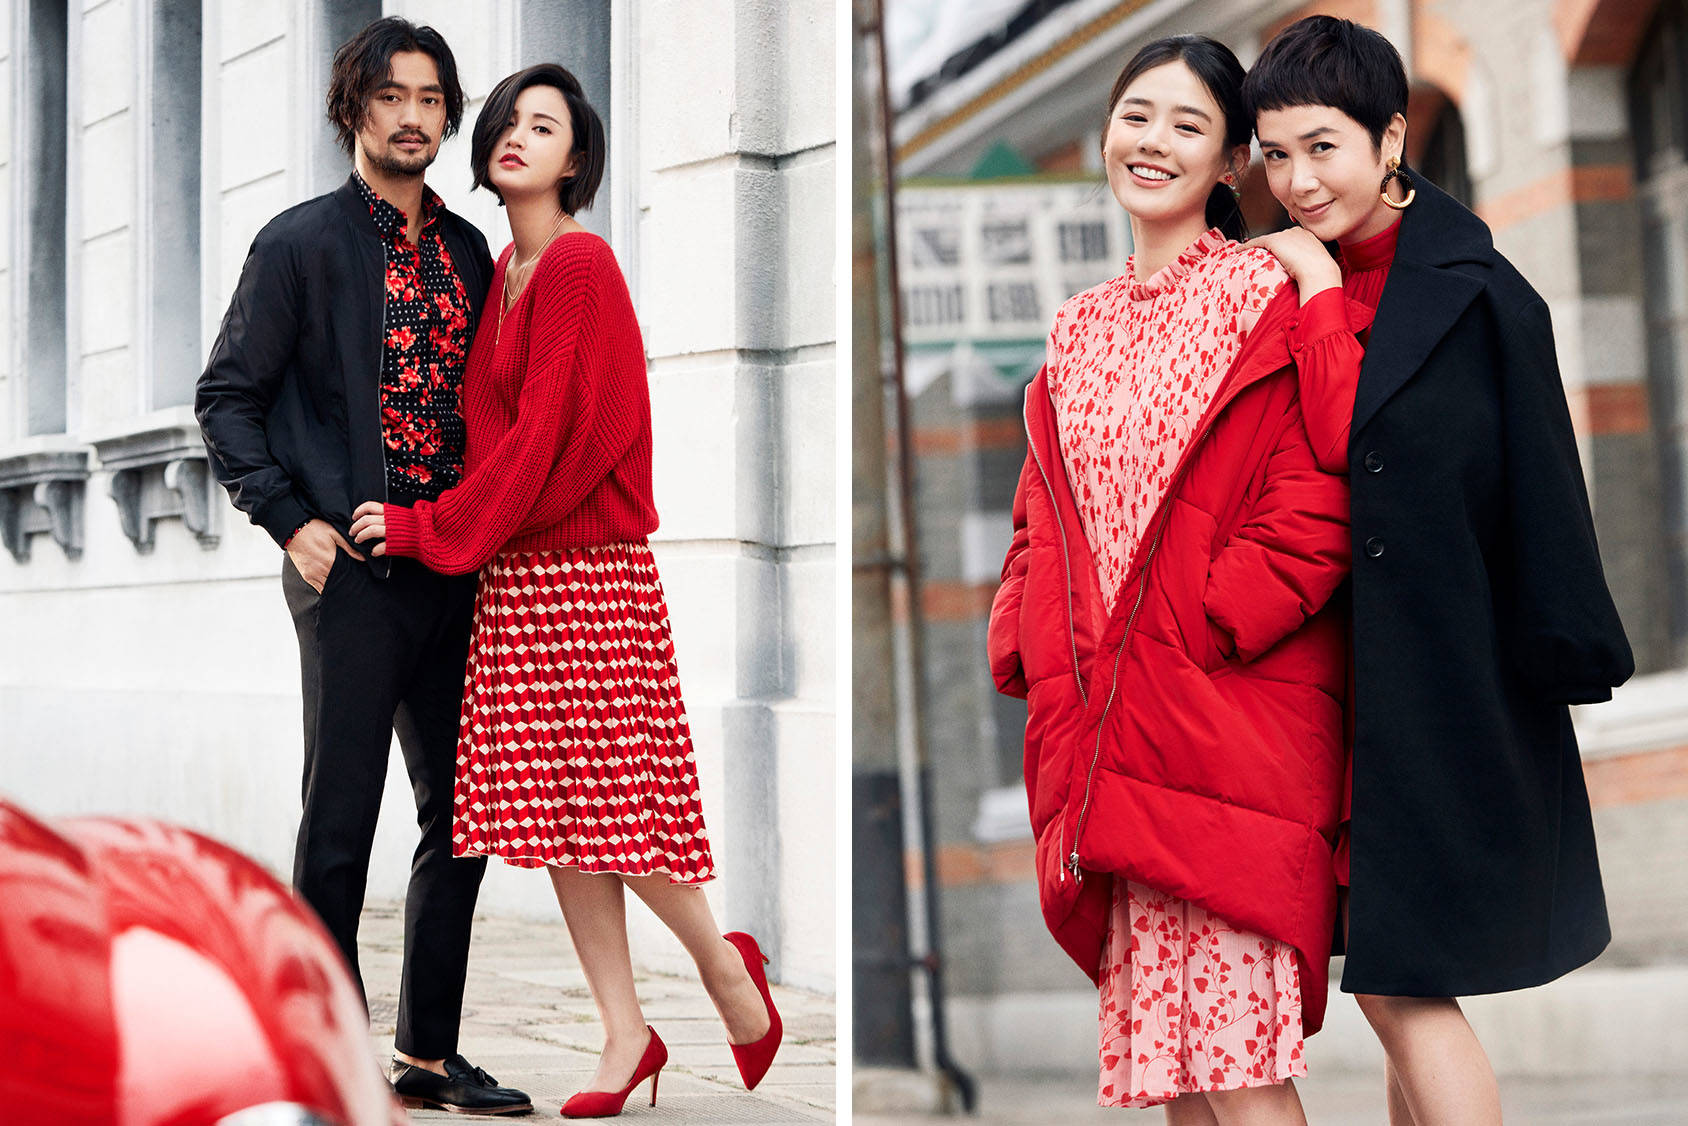 H&M is coming home for CNY with Ma SiChun, Jiang Wenli Yuan Hong and Zhang Xinyi